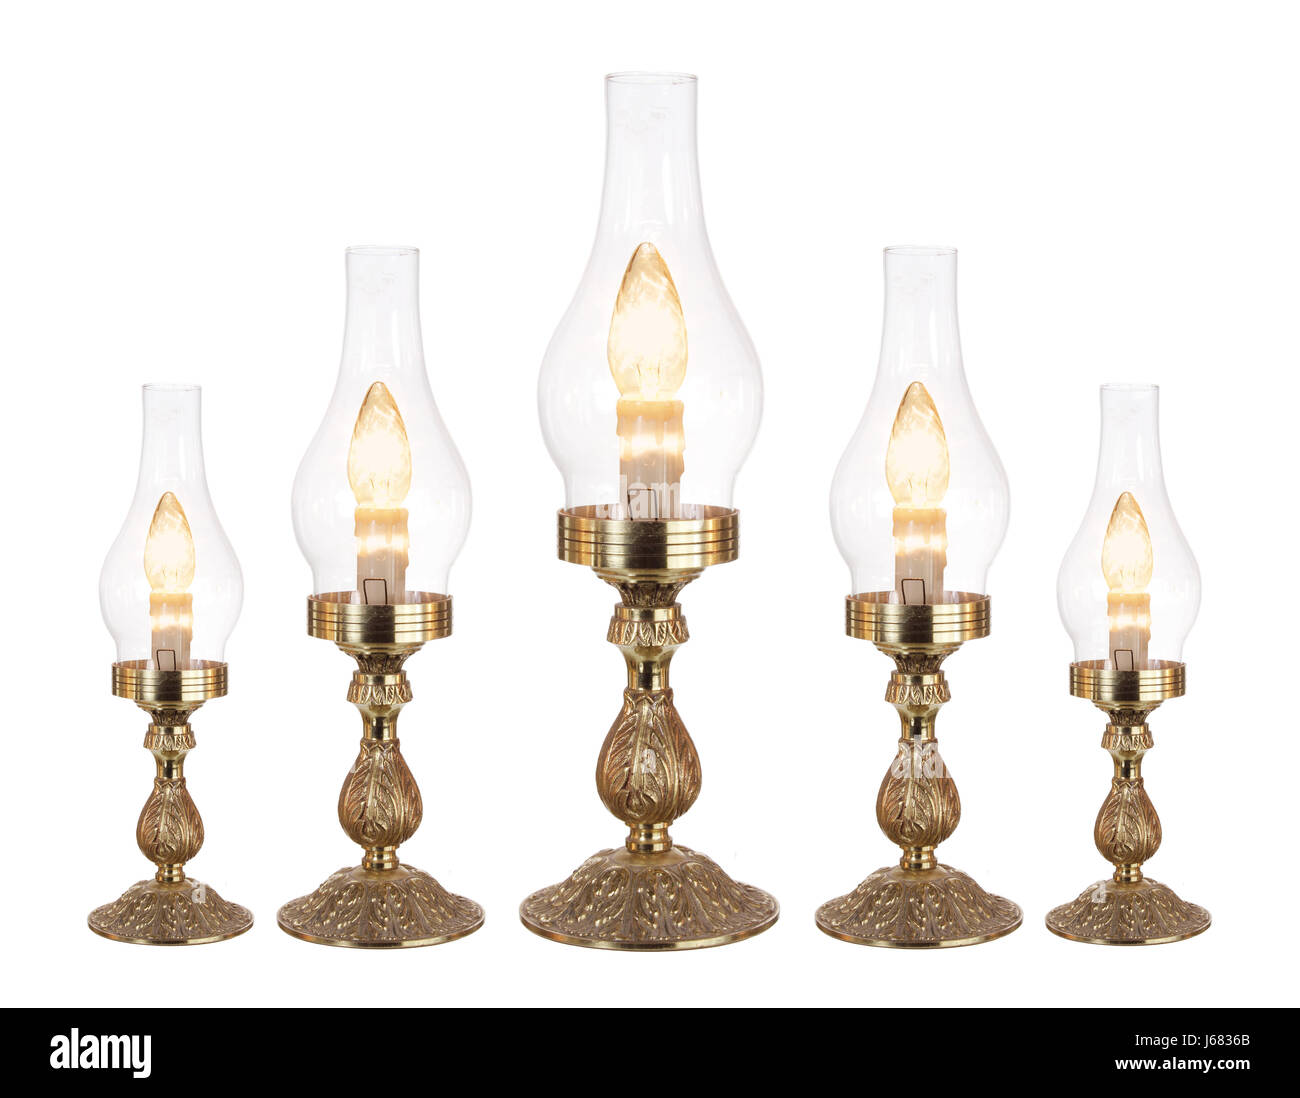 Table Lamps on White Background - Stock Image